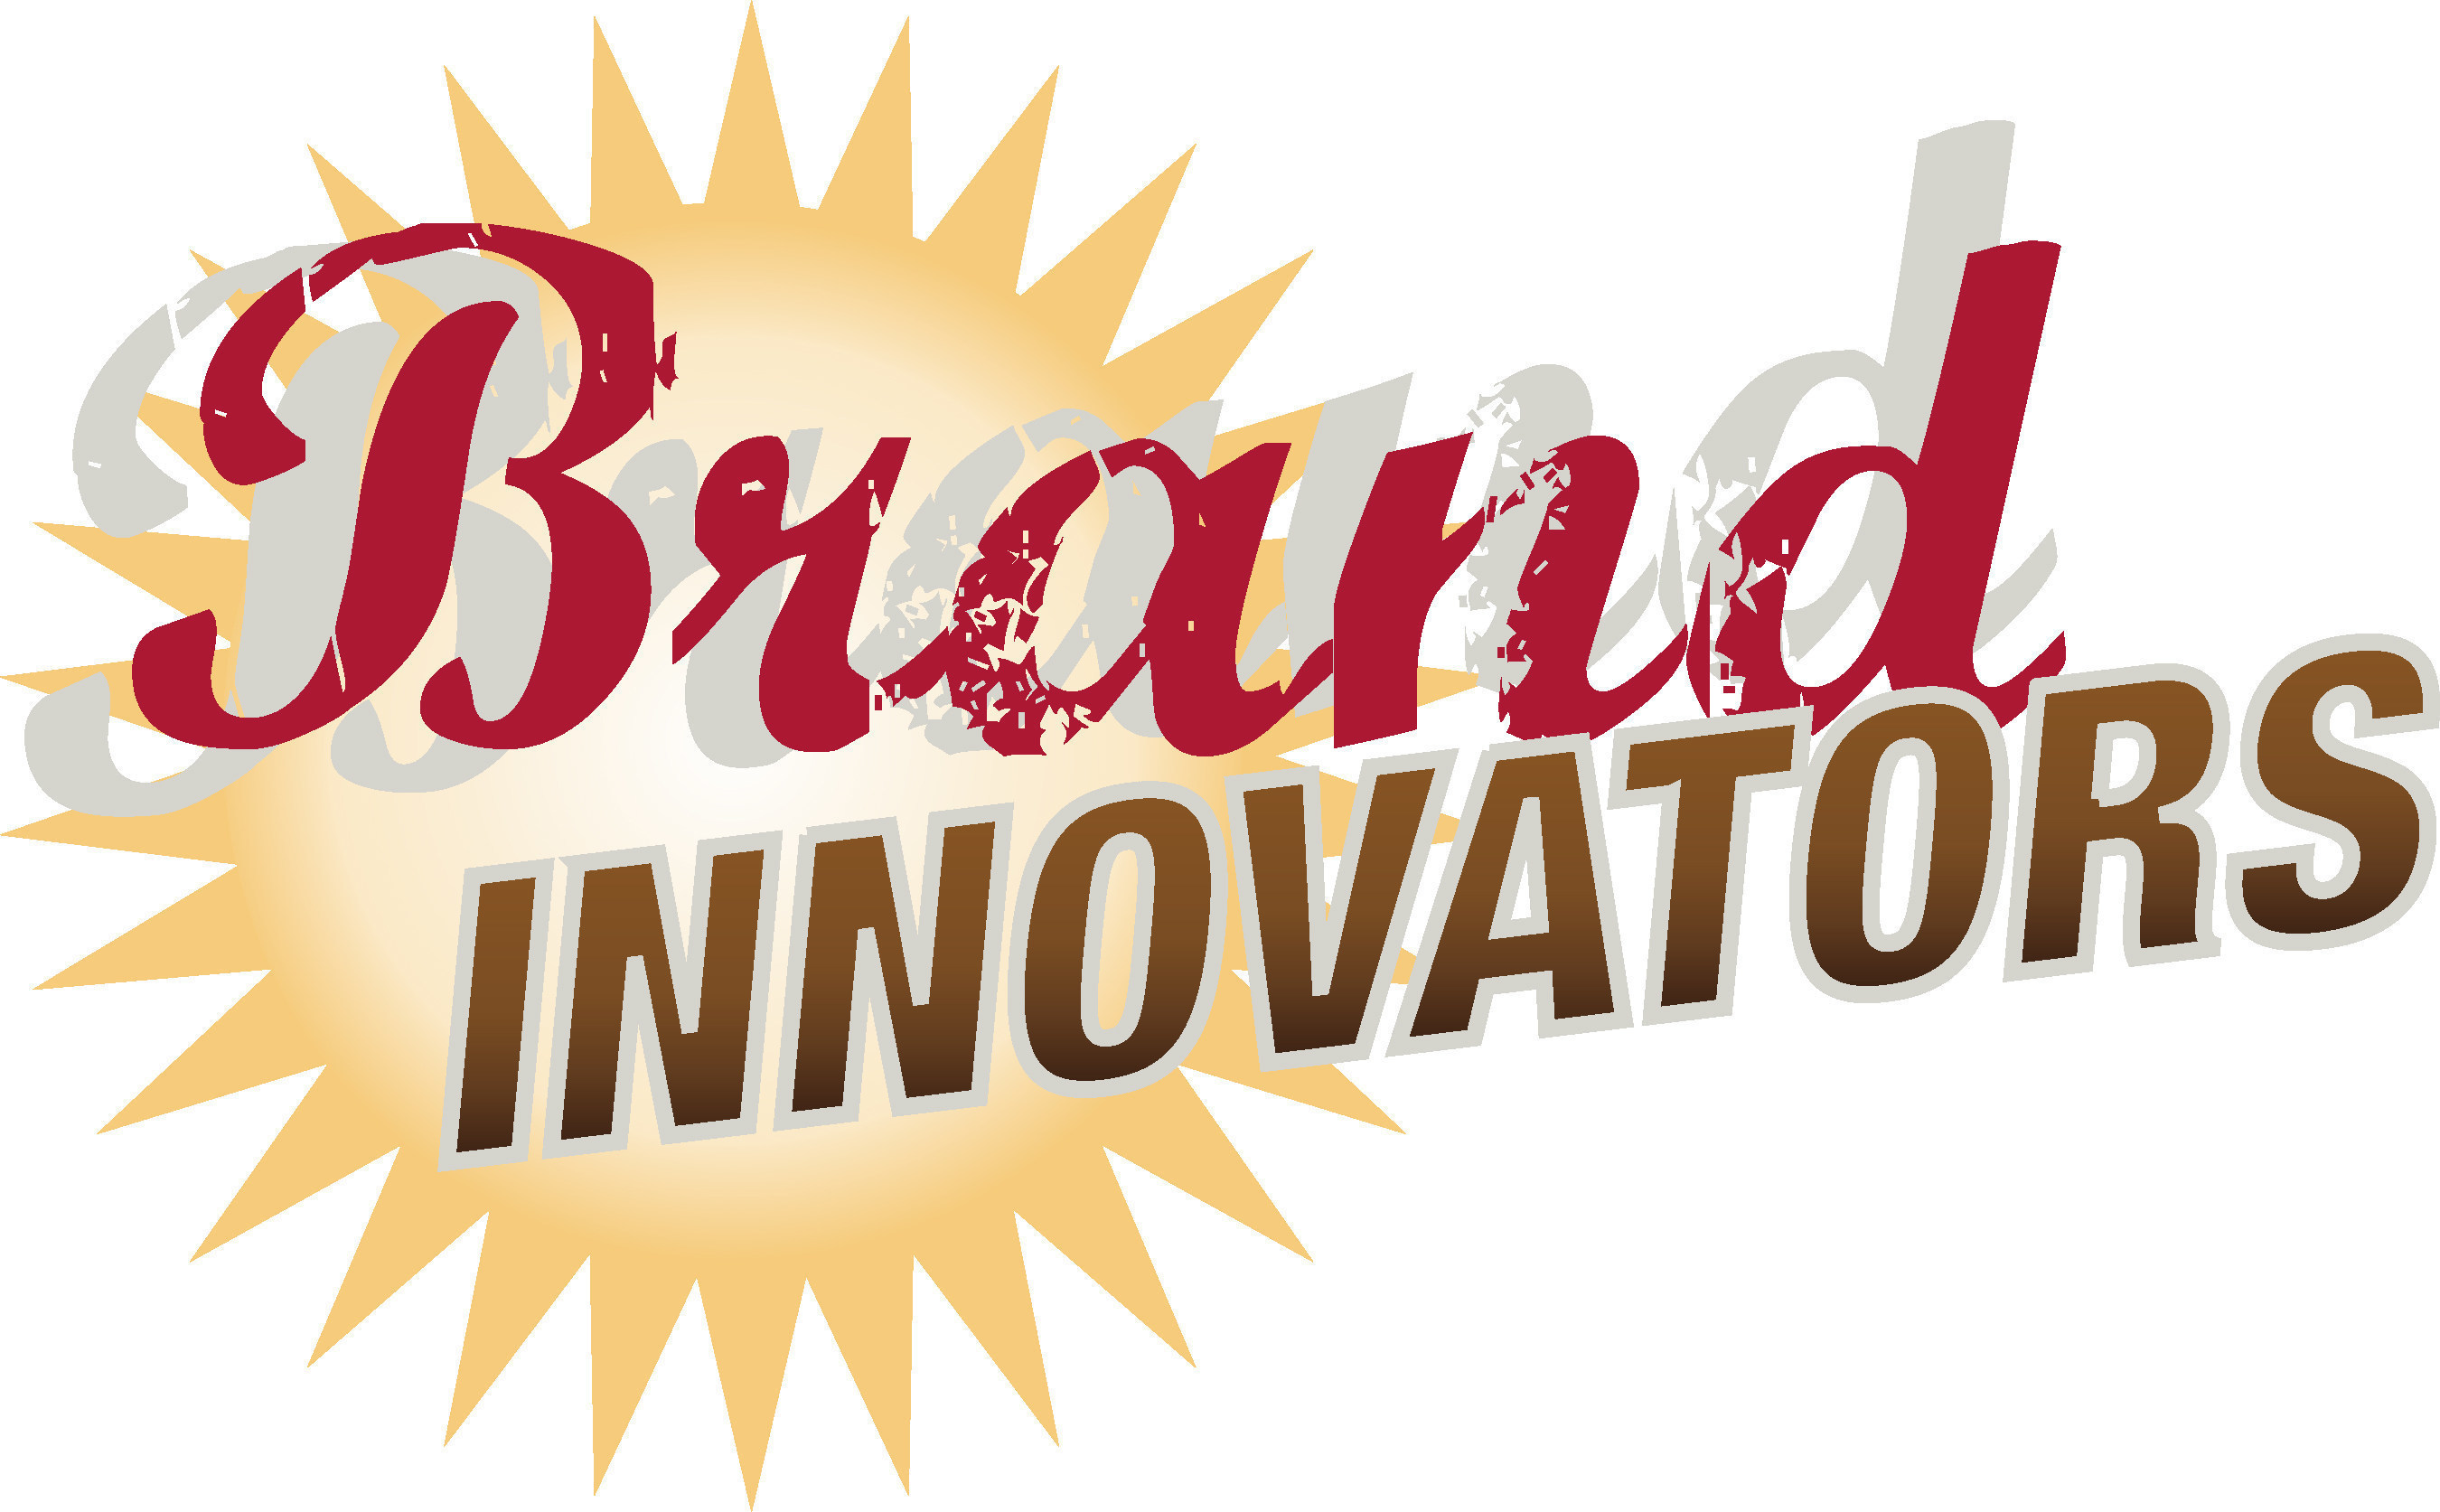 """Founded in 2011, Brand Innovators is the largest professional organization of brand marketers, with a community of over 7,000 marketing professionals from Fortune 500 and other leading brands, throughout the United States and the UK. The Brand Innovators Advisory Board includes some of the most innovative brand marketers and """"change agents"""" in the marketing and media industries. The company will produce more than 100 events in 2015 in Atlanta, Austin, Bentonville, Boston, Cannes, Chicago, Cincinnati, Col..."""